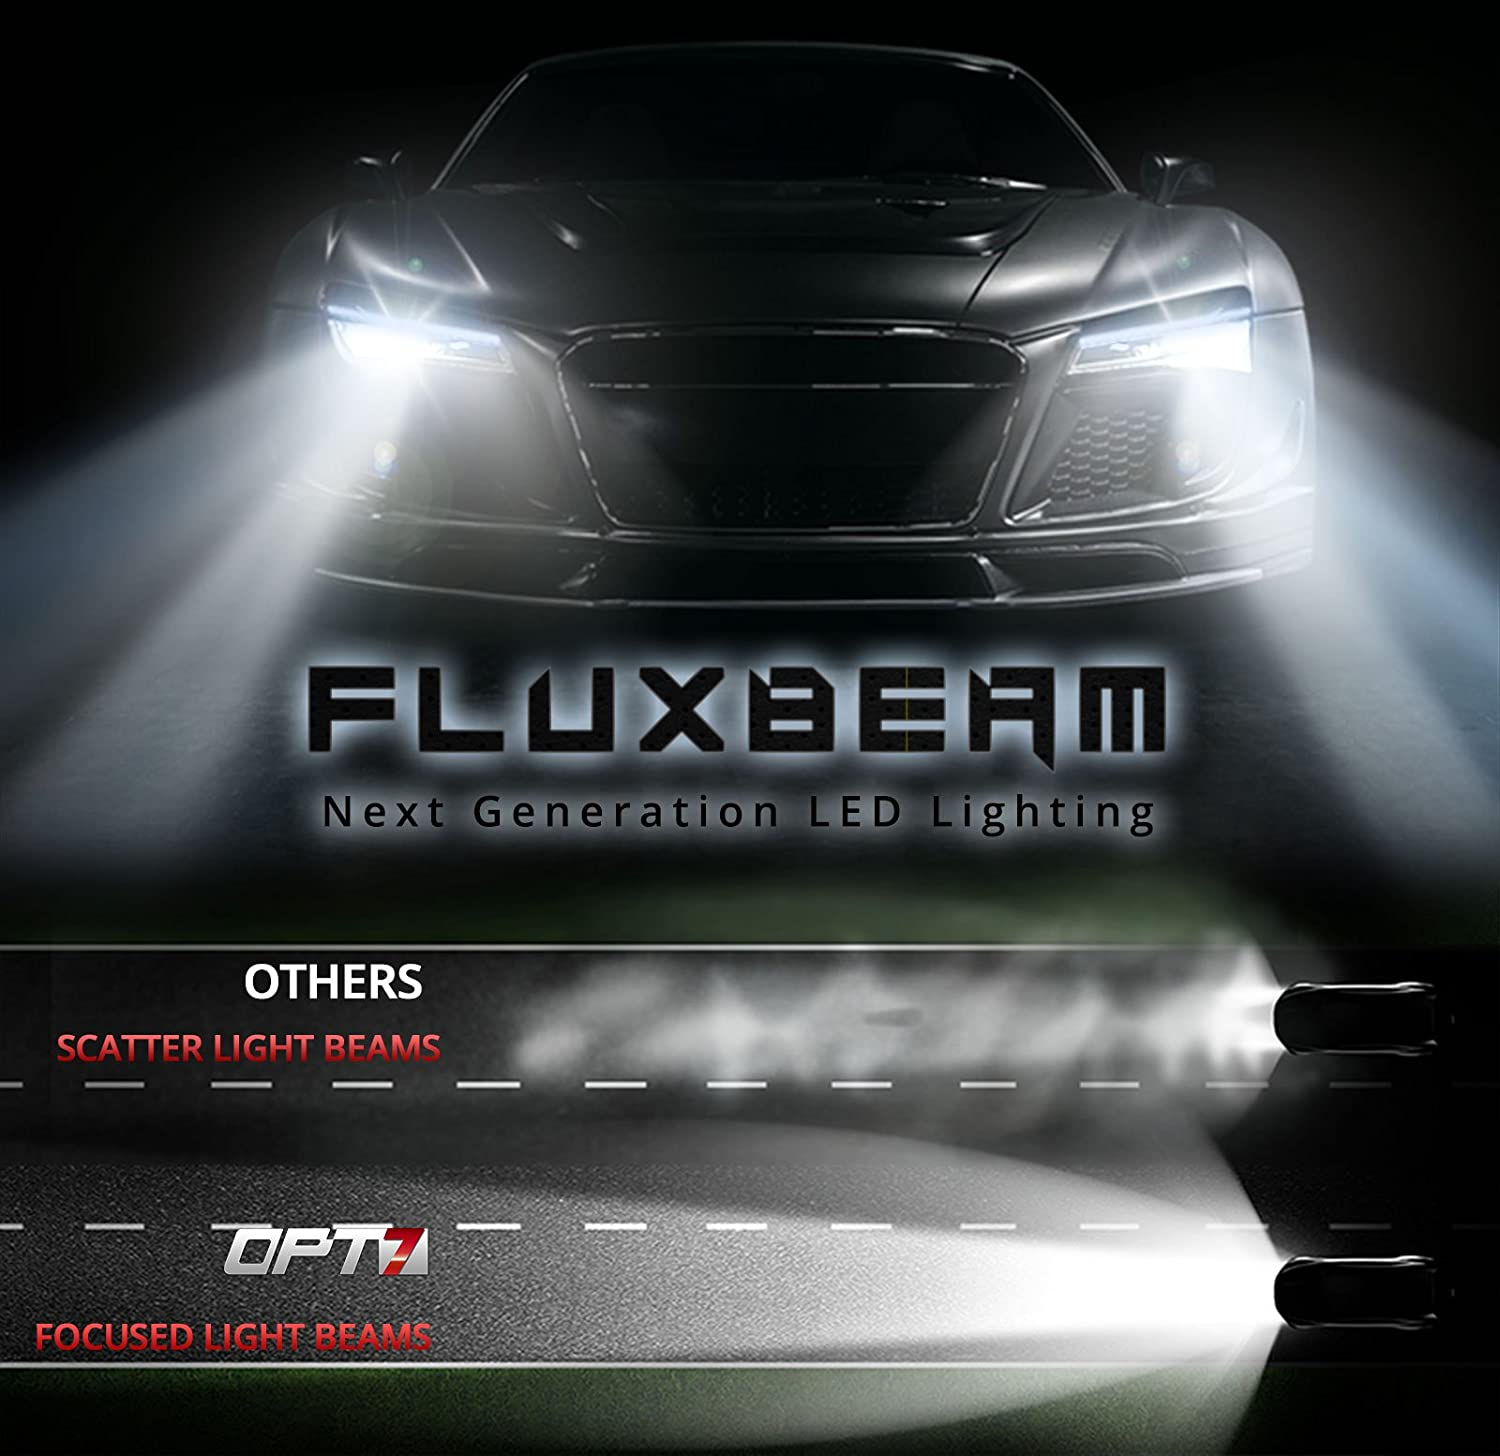 Opt7 Fluxbeam Led Headlight Kit W Clear Arc Beam Bulbs Hid Wiring Schematic H4 9003 80w 7000lm 6k Cool White Cree 2 Yr Warranty Automotive